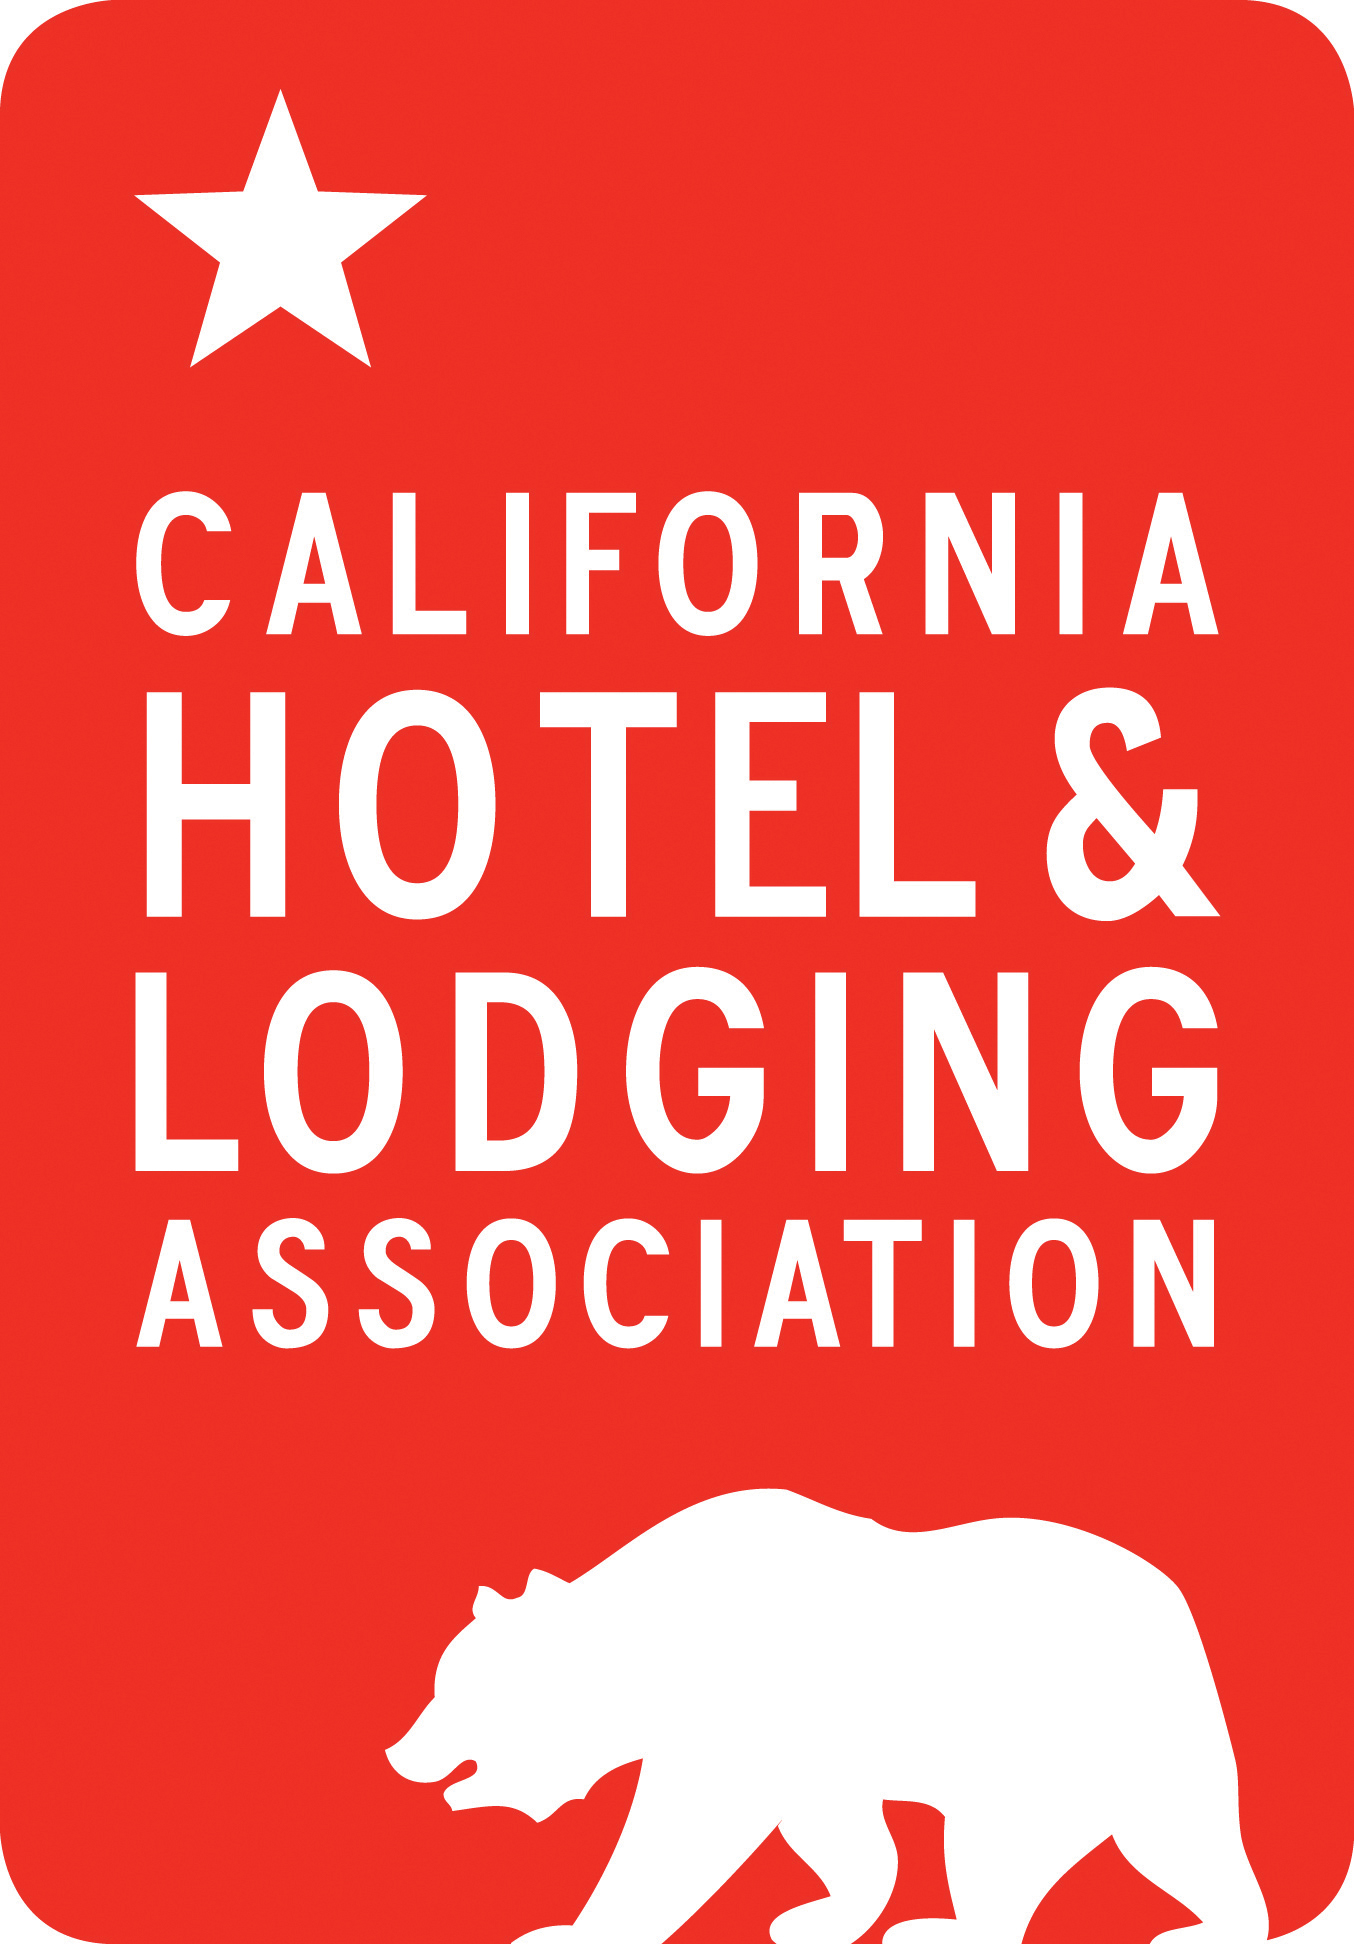 California Hotel & Lodging Association logo